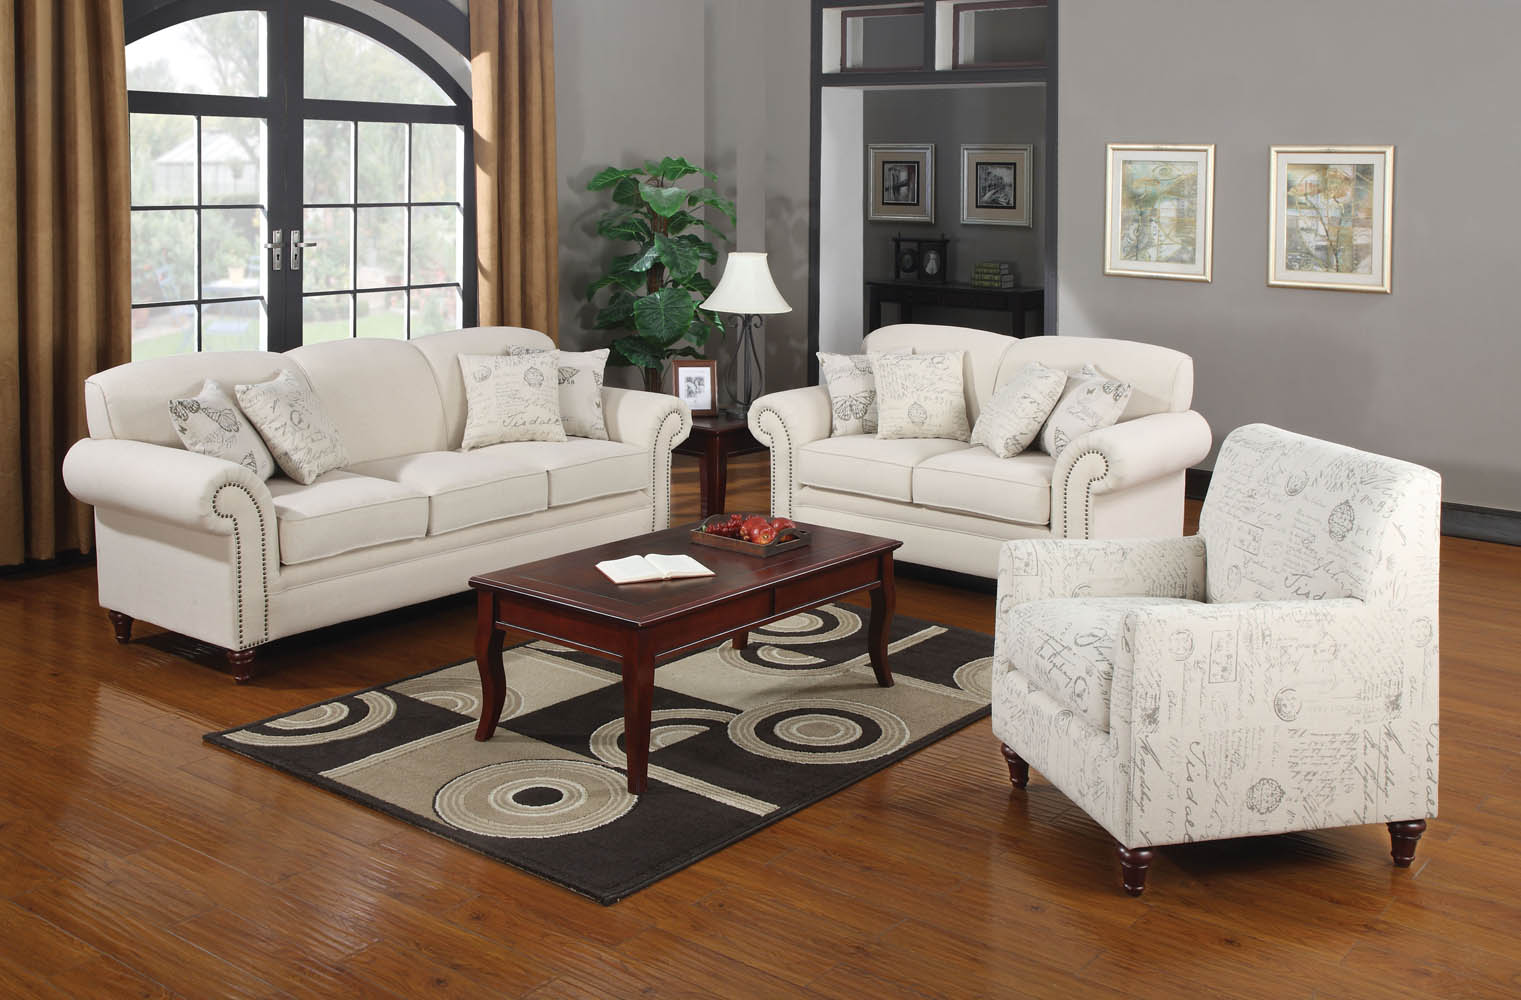 3 piece oatmeal linen fabric sofa set for 3 piece living room furniture